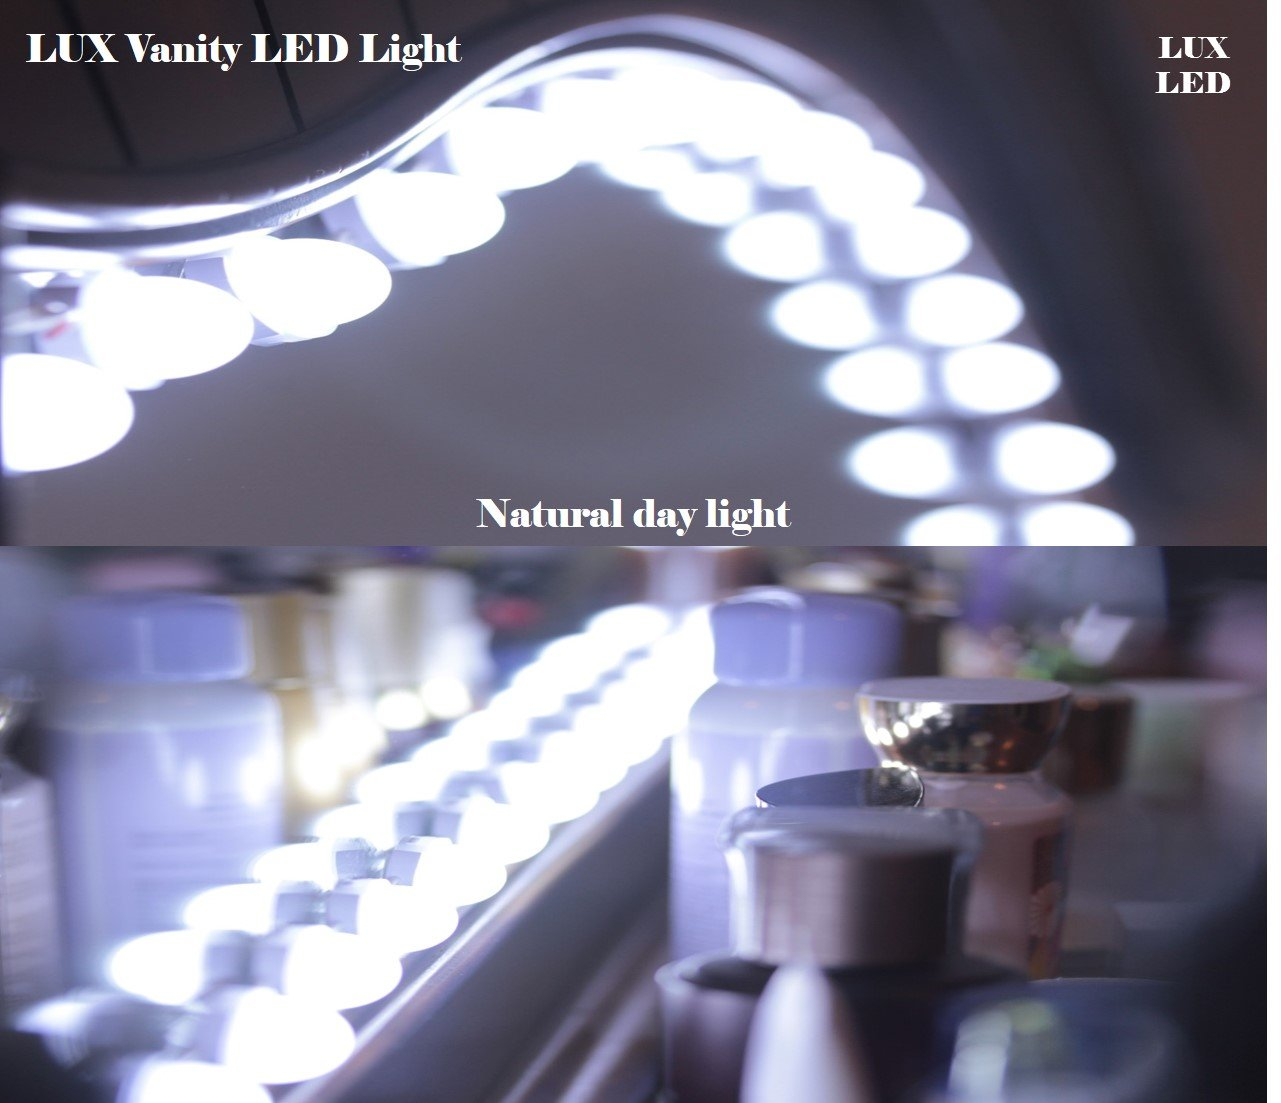 LUXLED Luxurious Anti-Glare LED Lights Vanity Makeup Cosmetic Mirror Touch Dimmable Switch Memory Function Day Light All in One Plug & Play Kit (19ft)